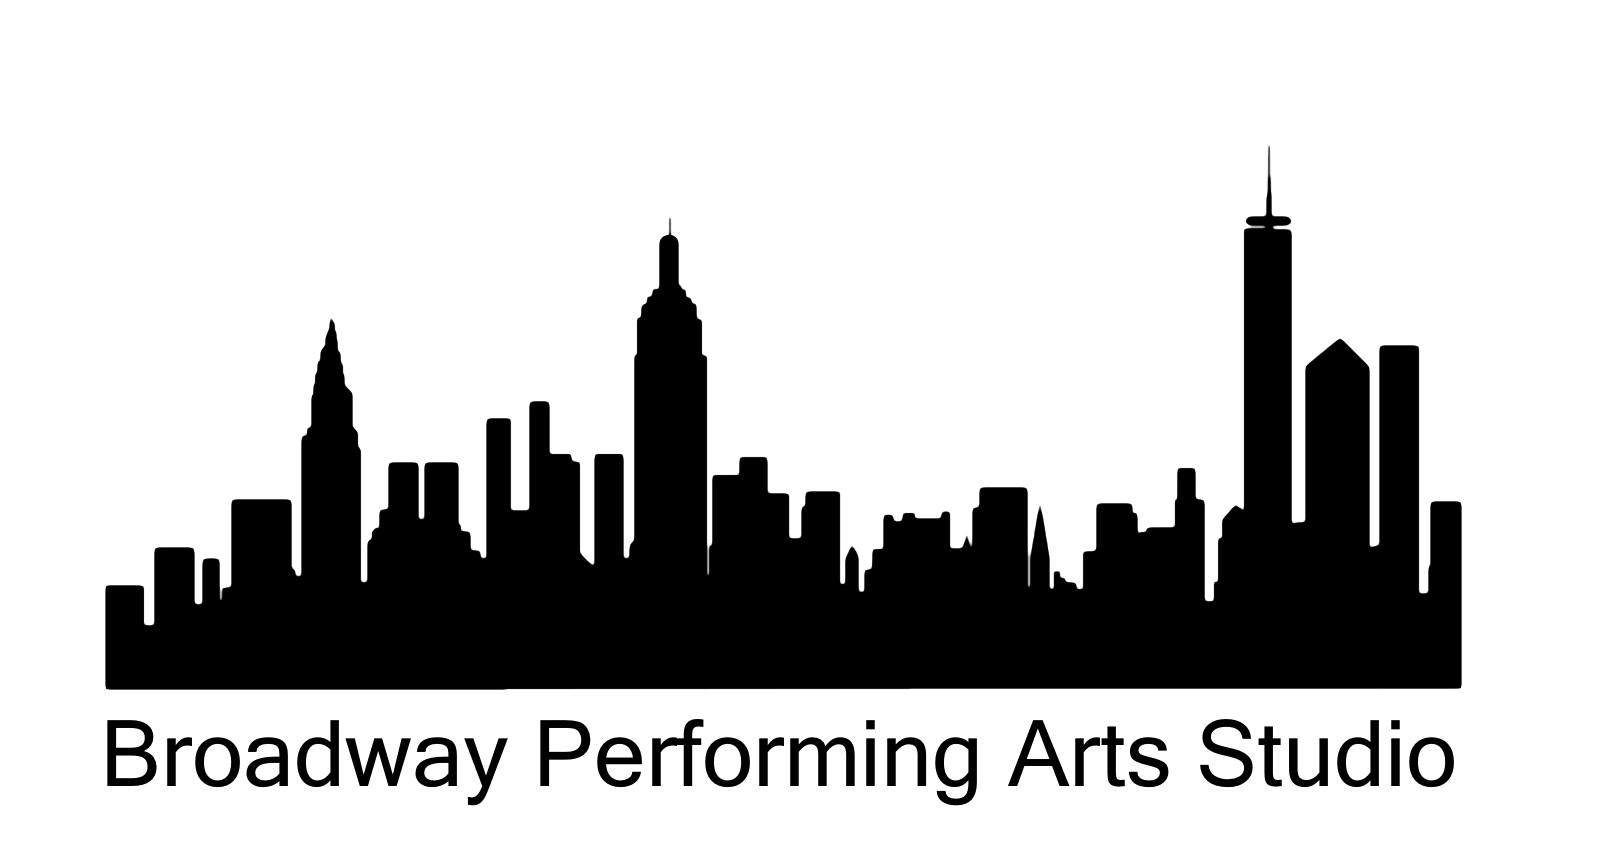 New york city skyline silhouette png. Image result for annie